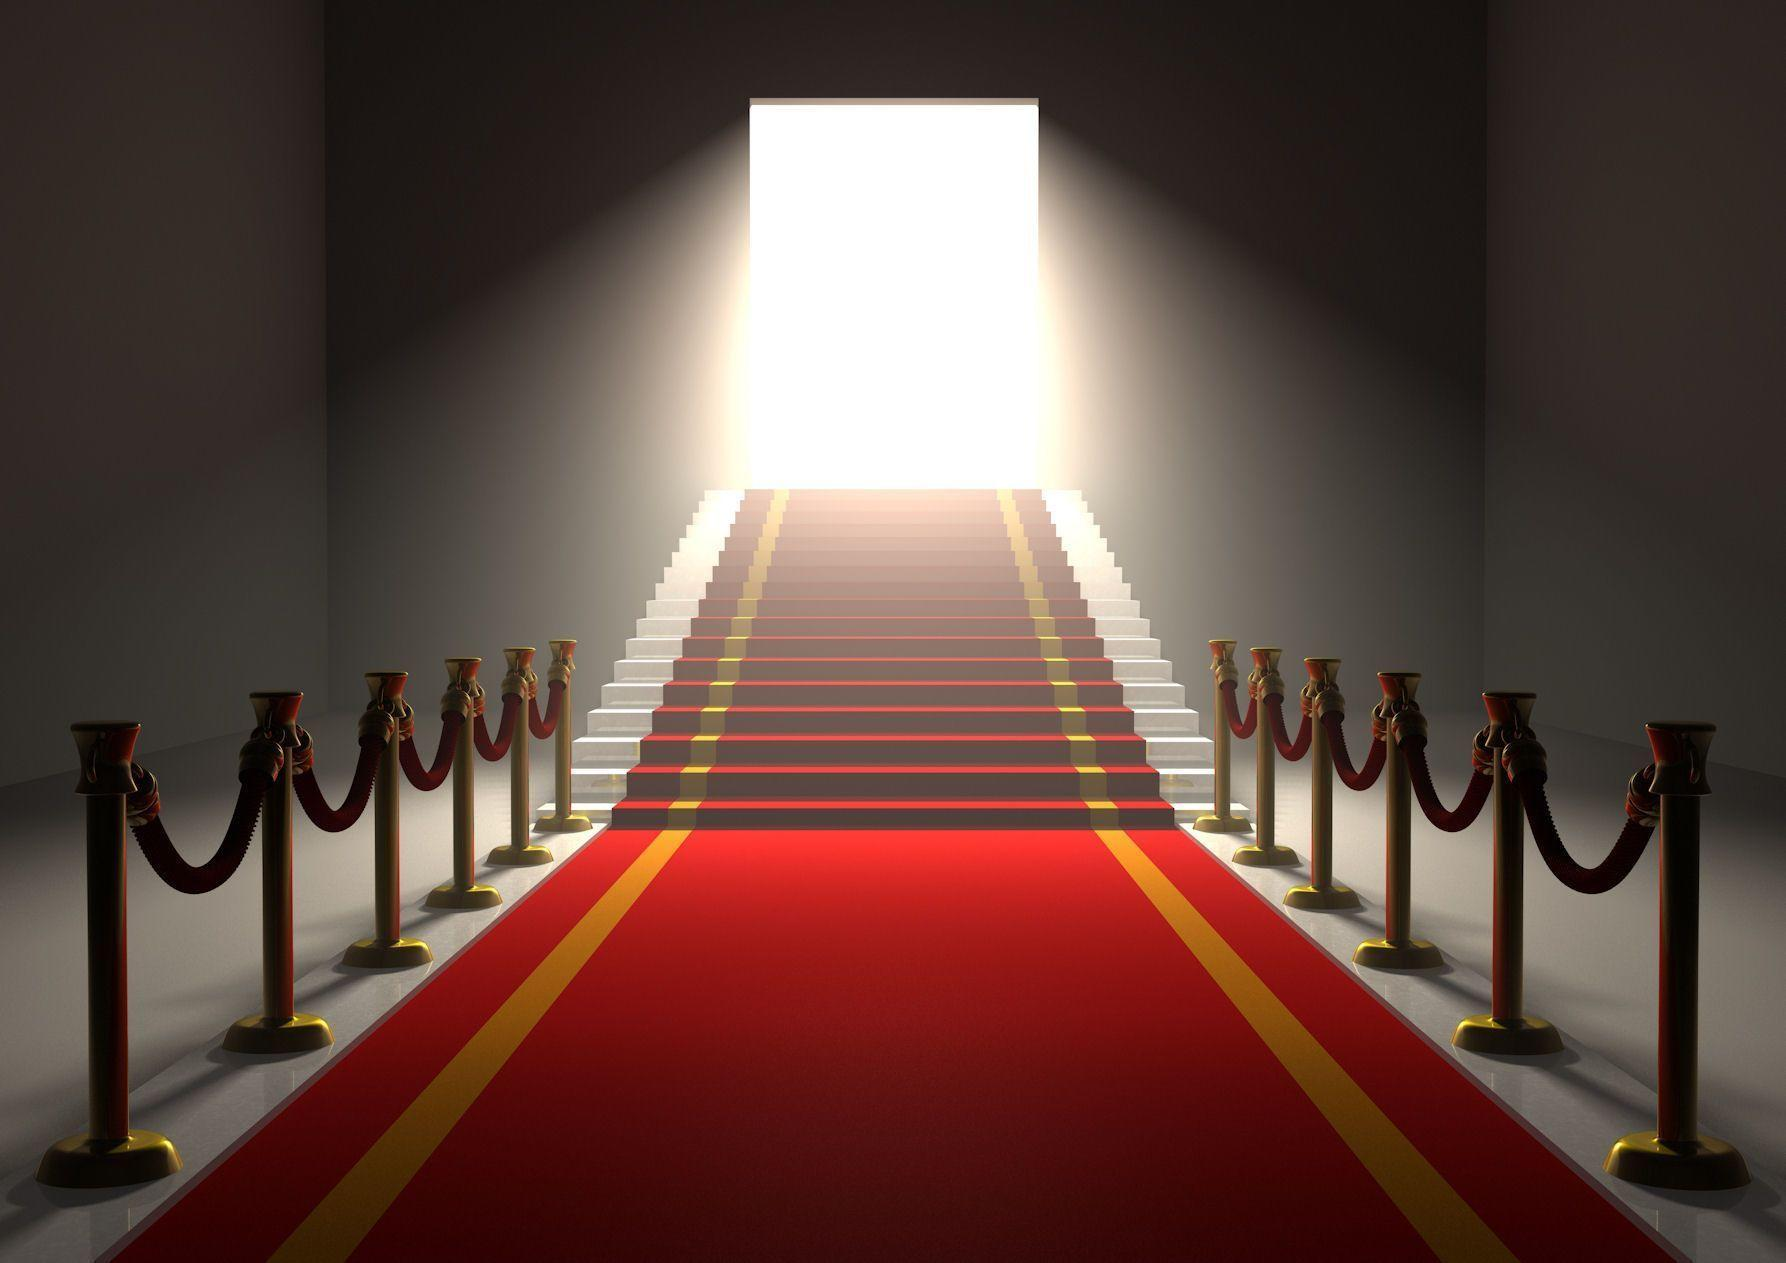 How To Design Perfect Invitation in addition Charlesschulz blogspot furthermore 25685 Ornate Red Carpet Backgrounds Vector Material 05 also Red Carpet Wallpaper further The Value Of Awards Depends On The Award Itself. on oscar awards invitation clip art